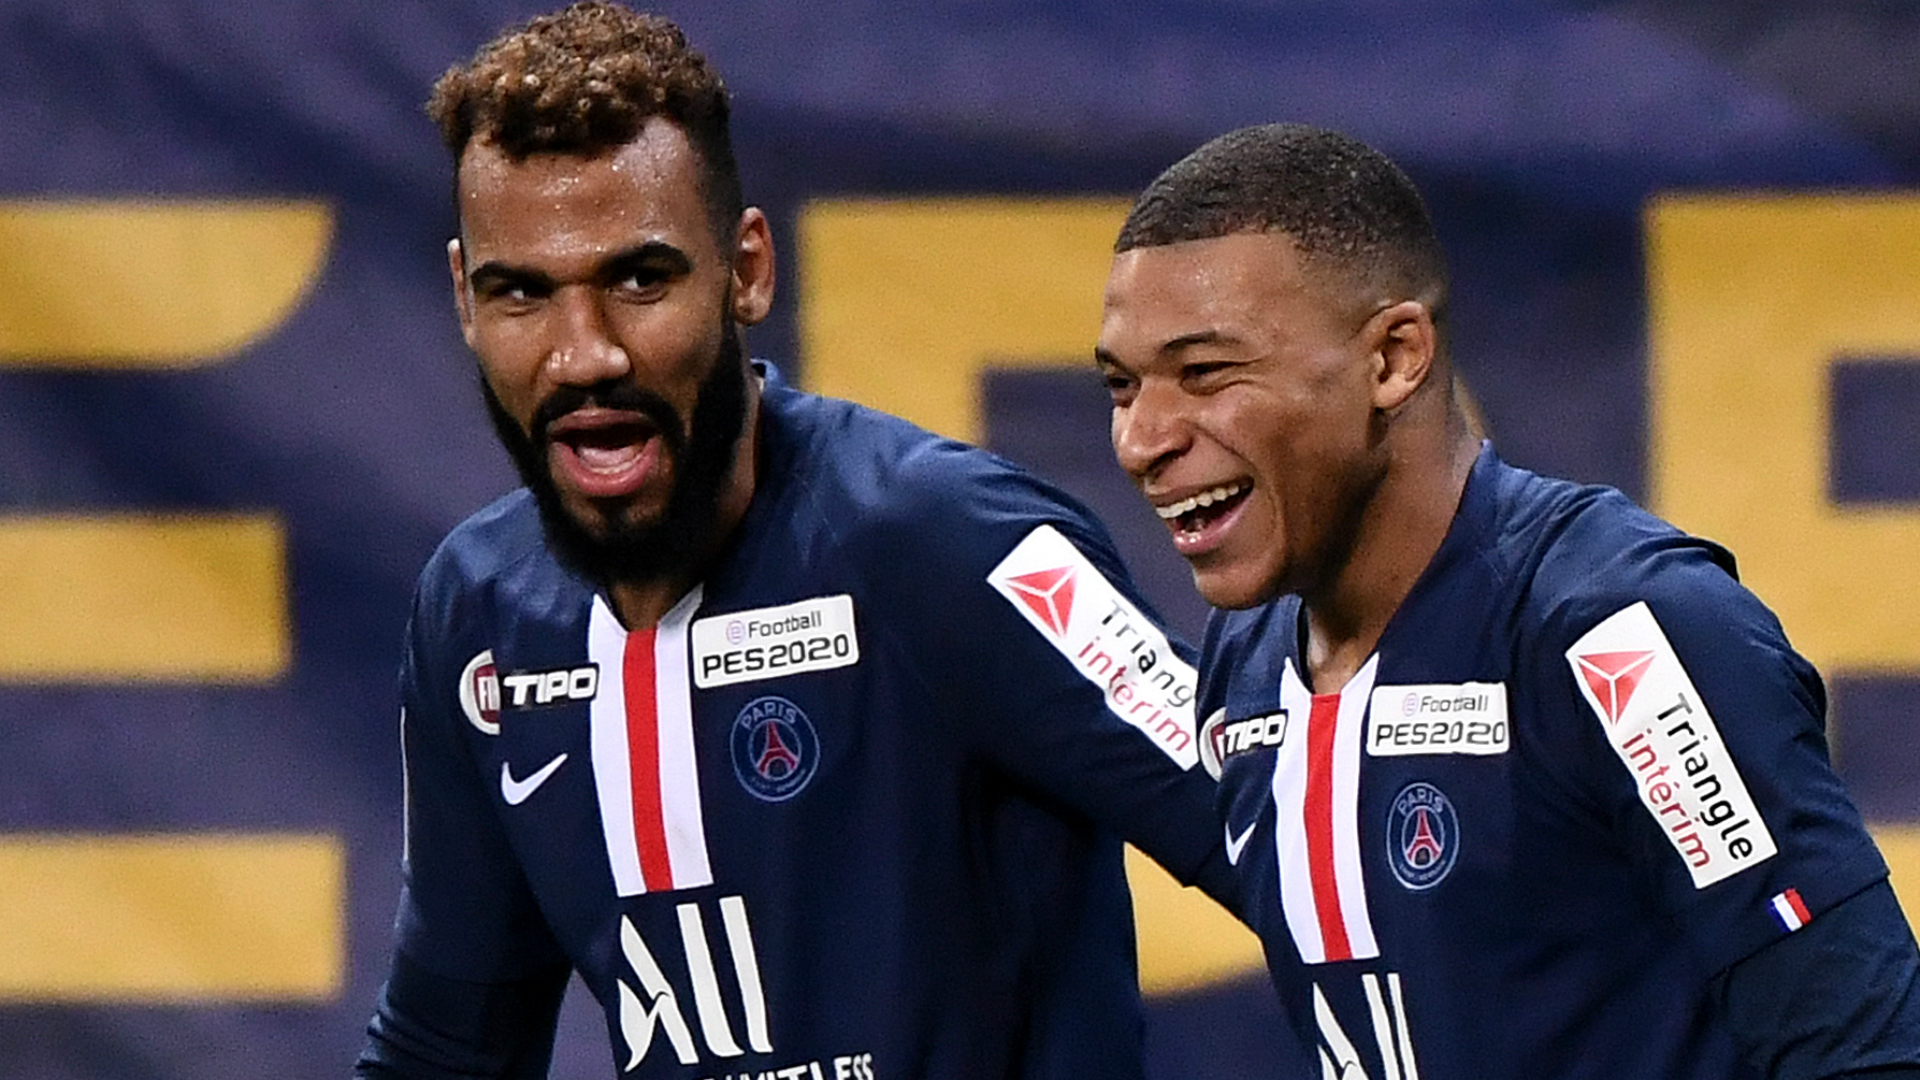 Le Mans 1-4 Paris Saint-Germain: Mbappe maintains scoring run as Tuchel's men ease through